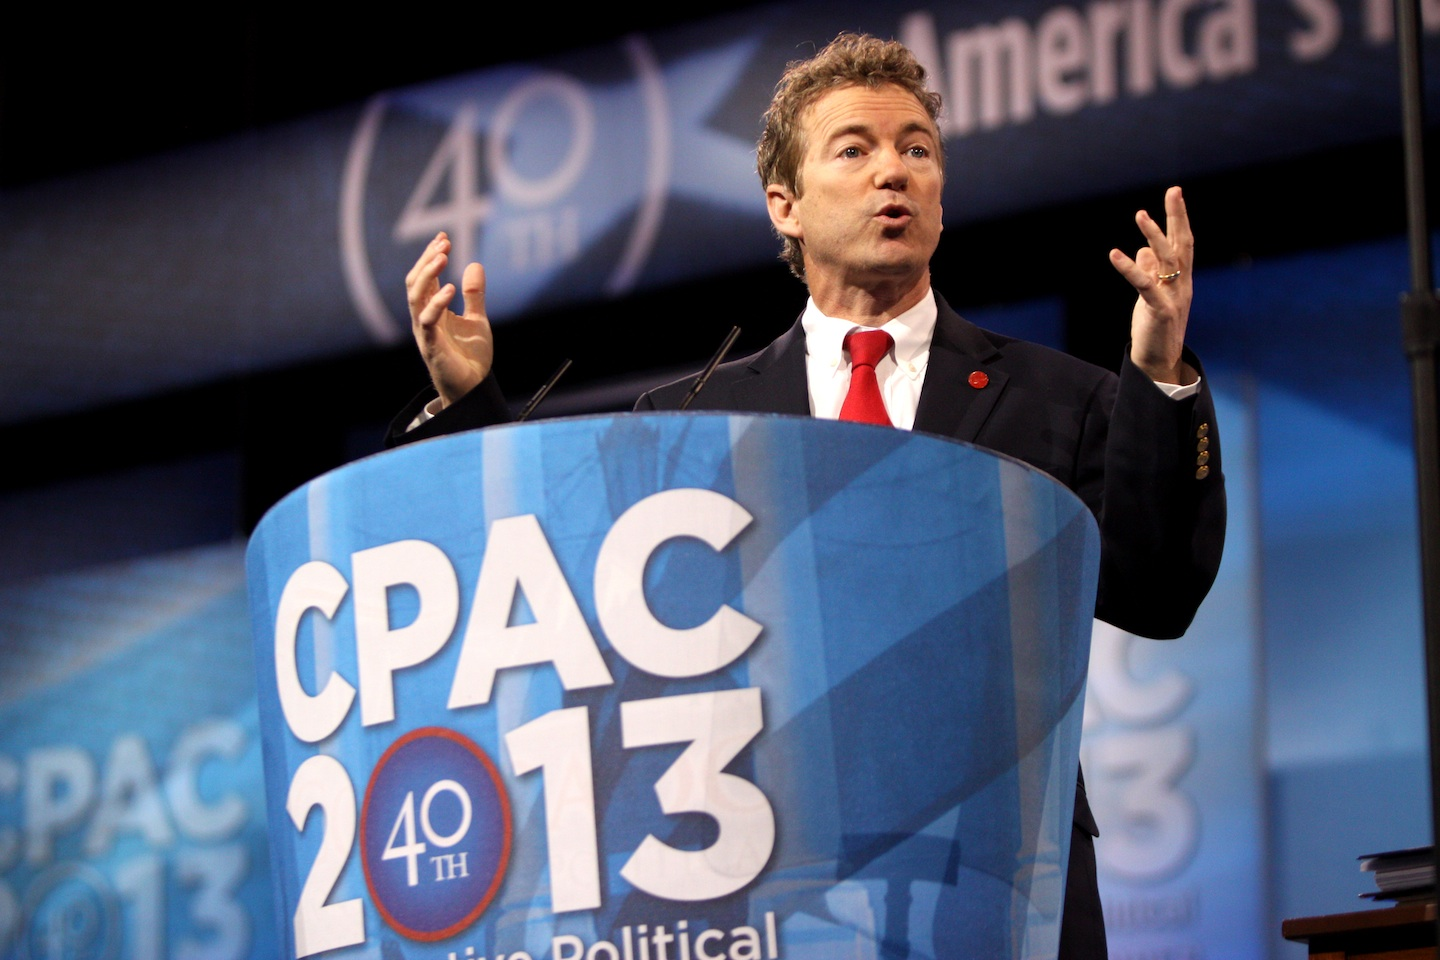 Click photo to download. Caption: U.S. Sen. Rand Rand Paul (R-KY) speaking at the 2013 Conservative Political Action Conference (CPAC) in Washington, DC on March 14, 2013. Credit: Gage Skidmore.